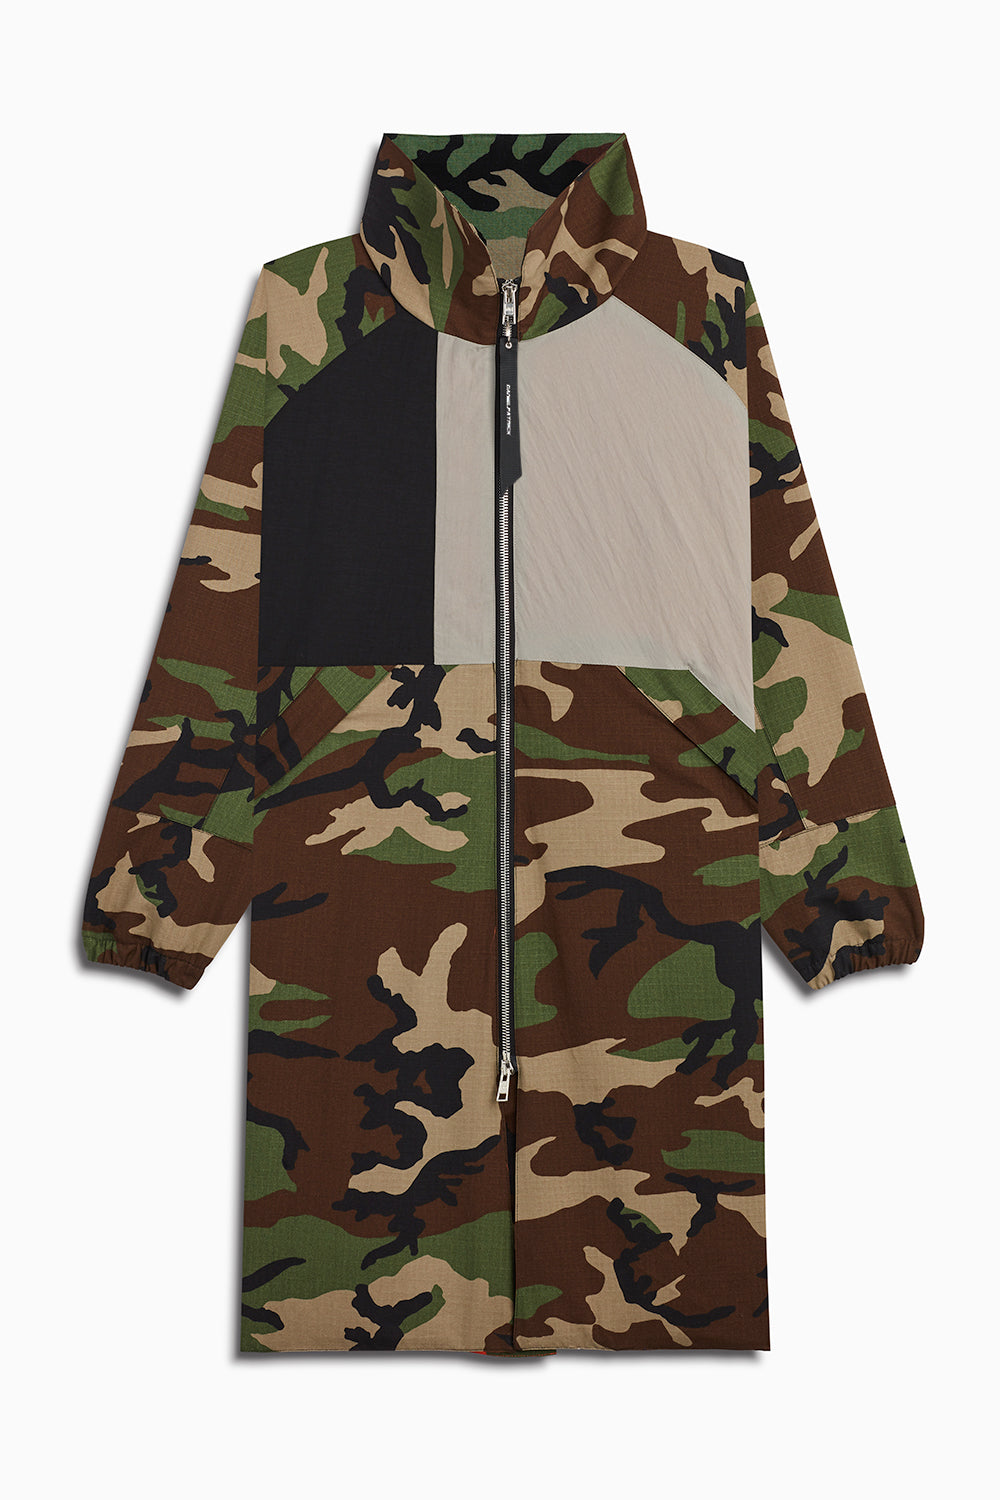 M93 track raincoat in camo/black/smog grey by daniel patrick